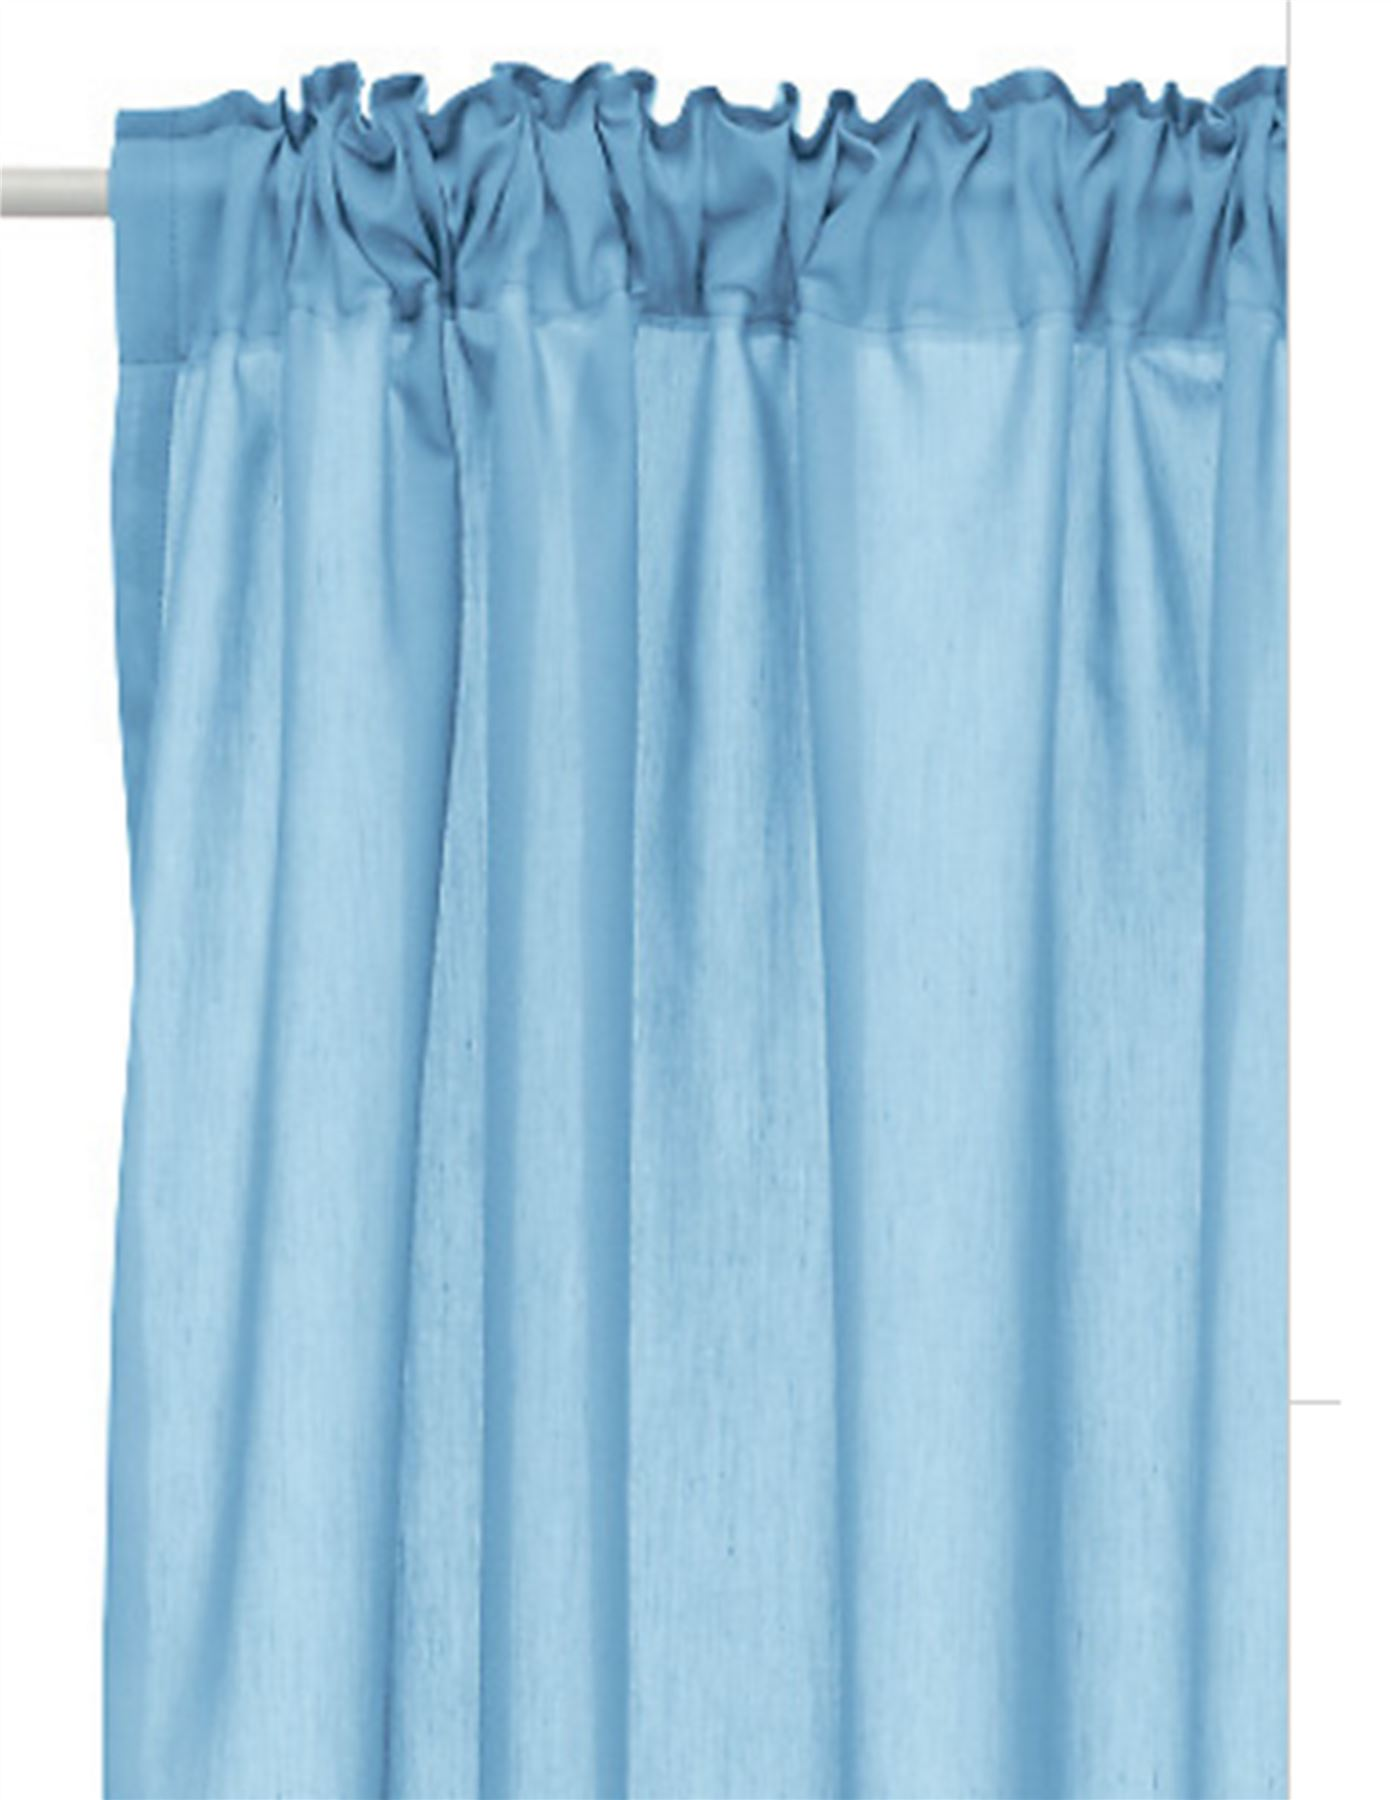 Ikea curtains blue - Ikea Curtains Blue Ikea Curtains I Want This Is The Blue For My